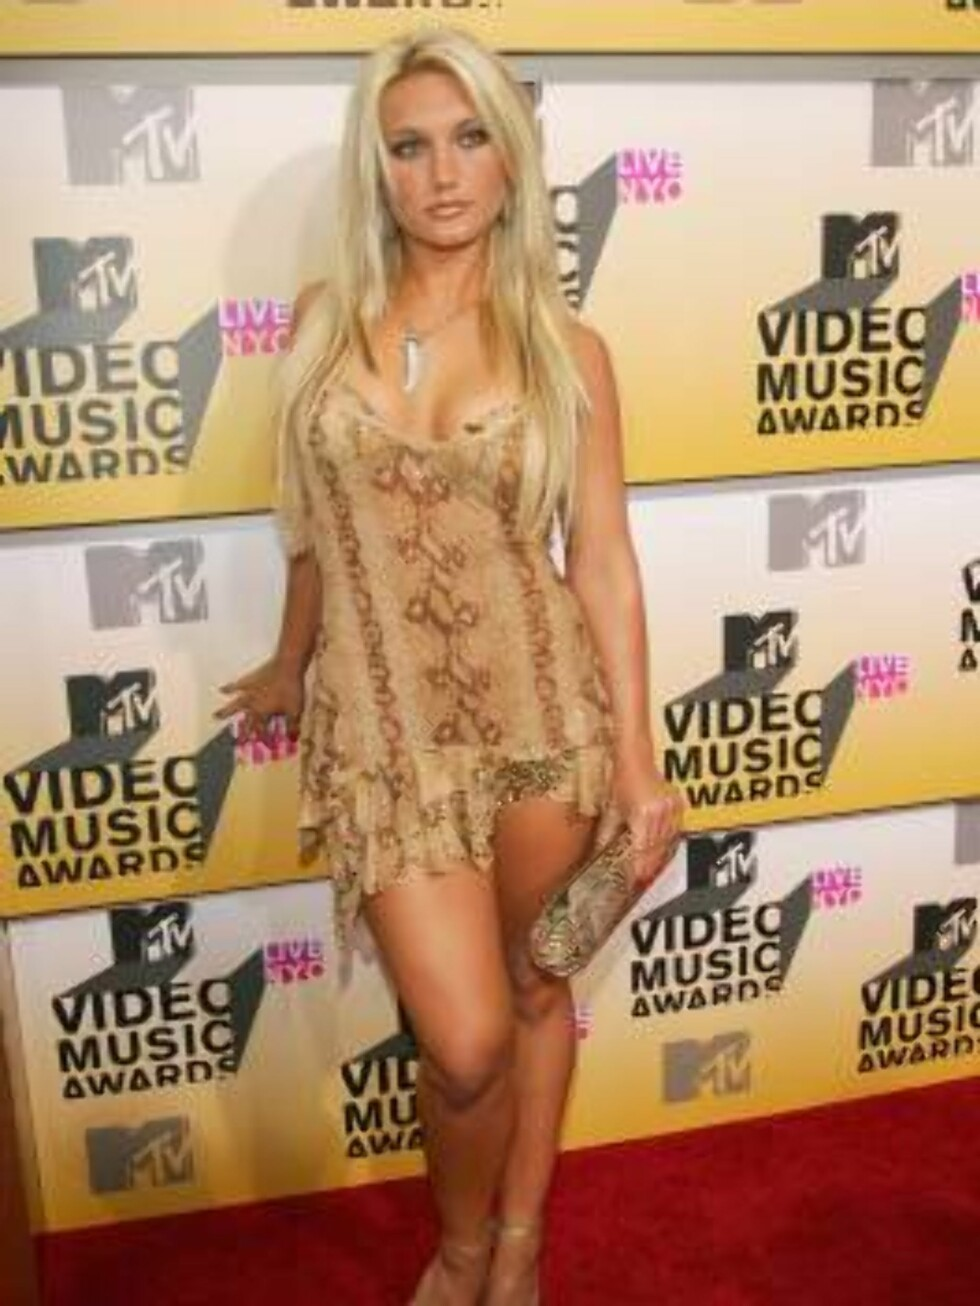 NEW YORK - AUGUST 31:  Singer Brooke Hogan attends the 2006 MTV Video Music Awards at Radio City Music Hall August 31, 2006 in New York City.  (Photo by Evan Agostini/Getty Images) *** Local Caption *** Brooke Hogan  * SPECIAL INSTRUCTIONS:  * *OBJECT NAM Foto: All Over Press